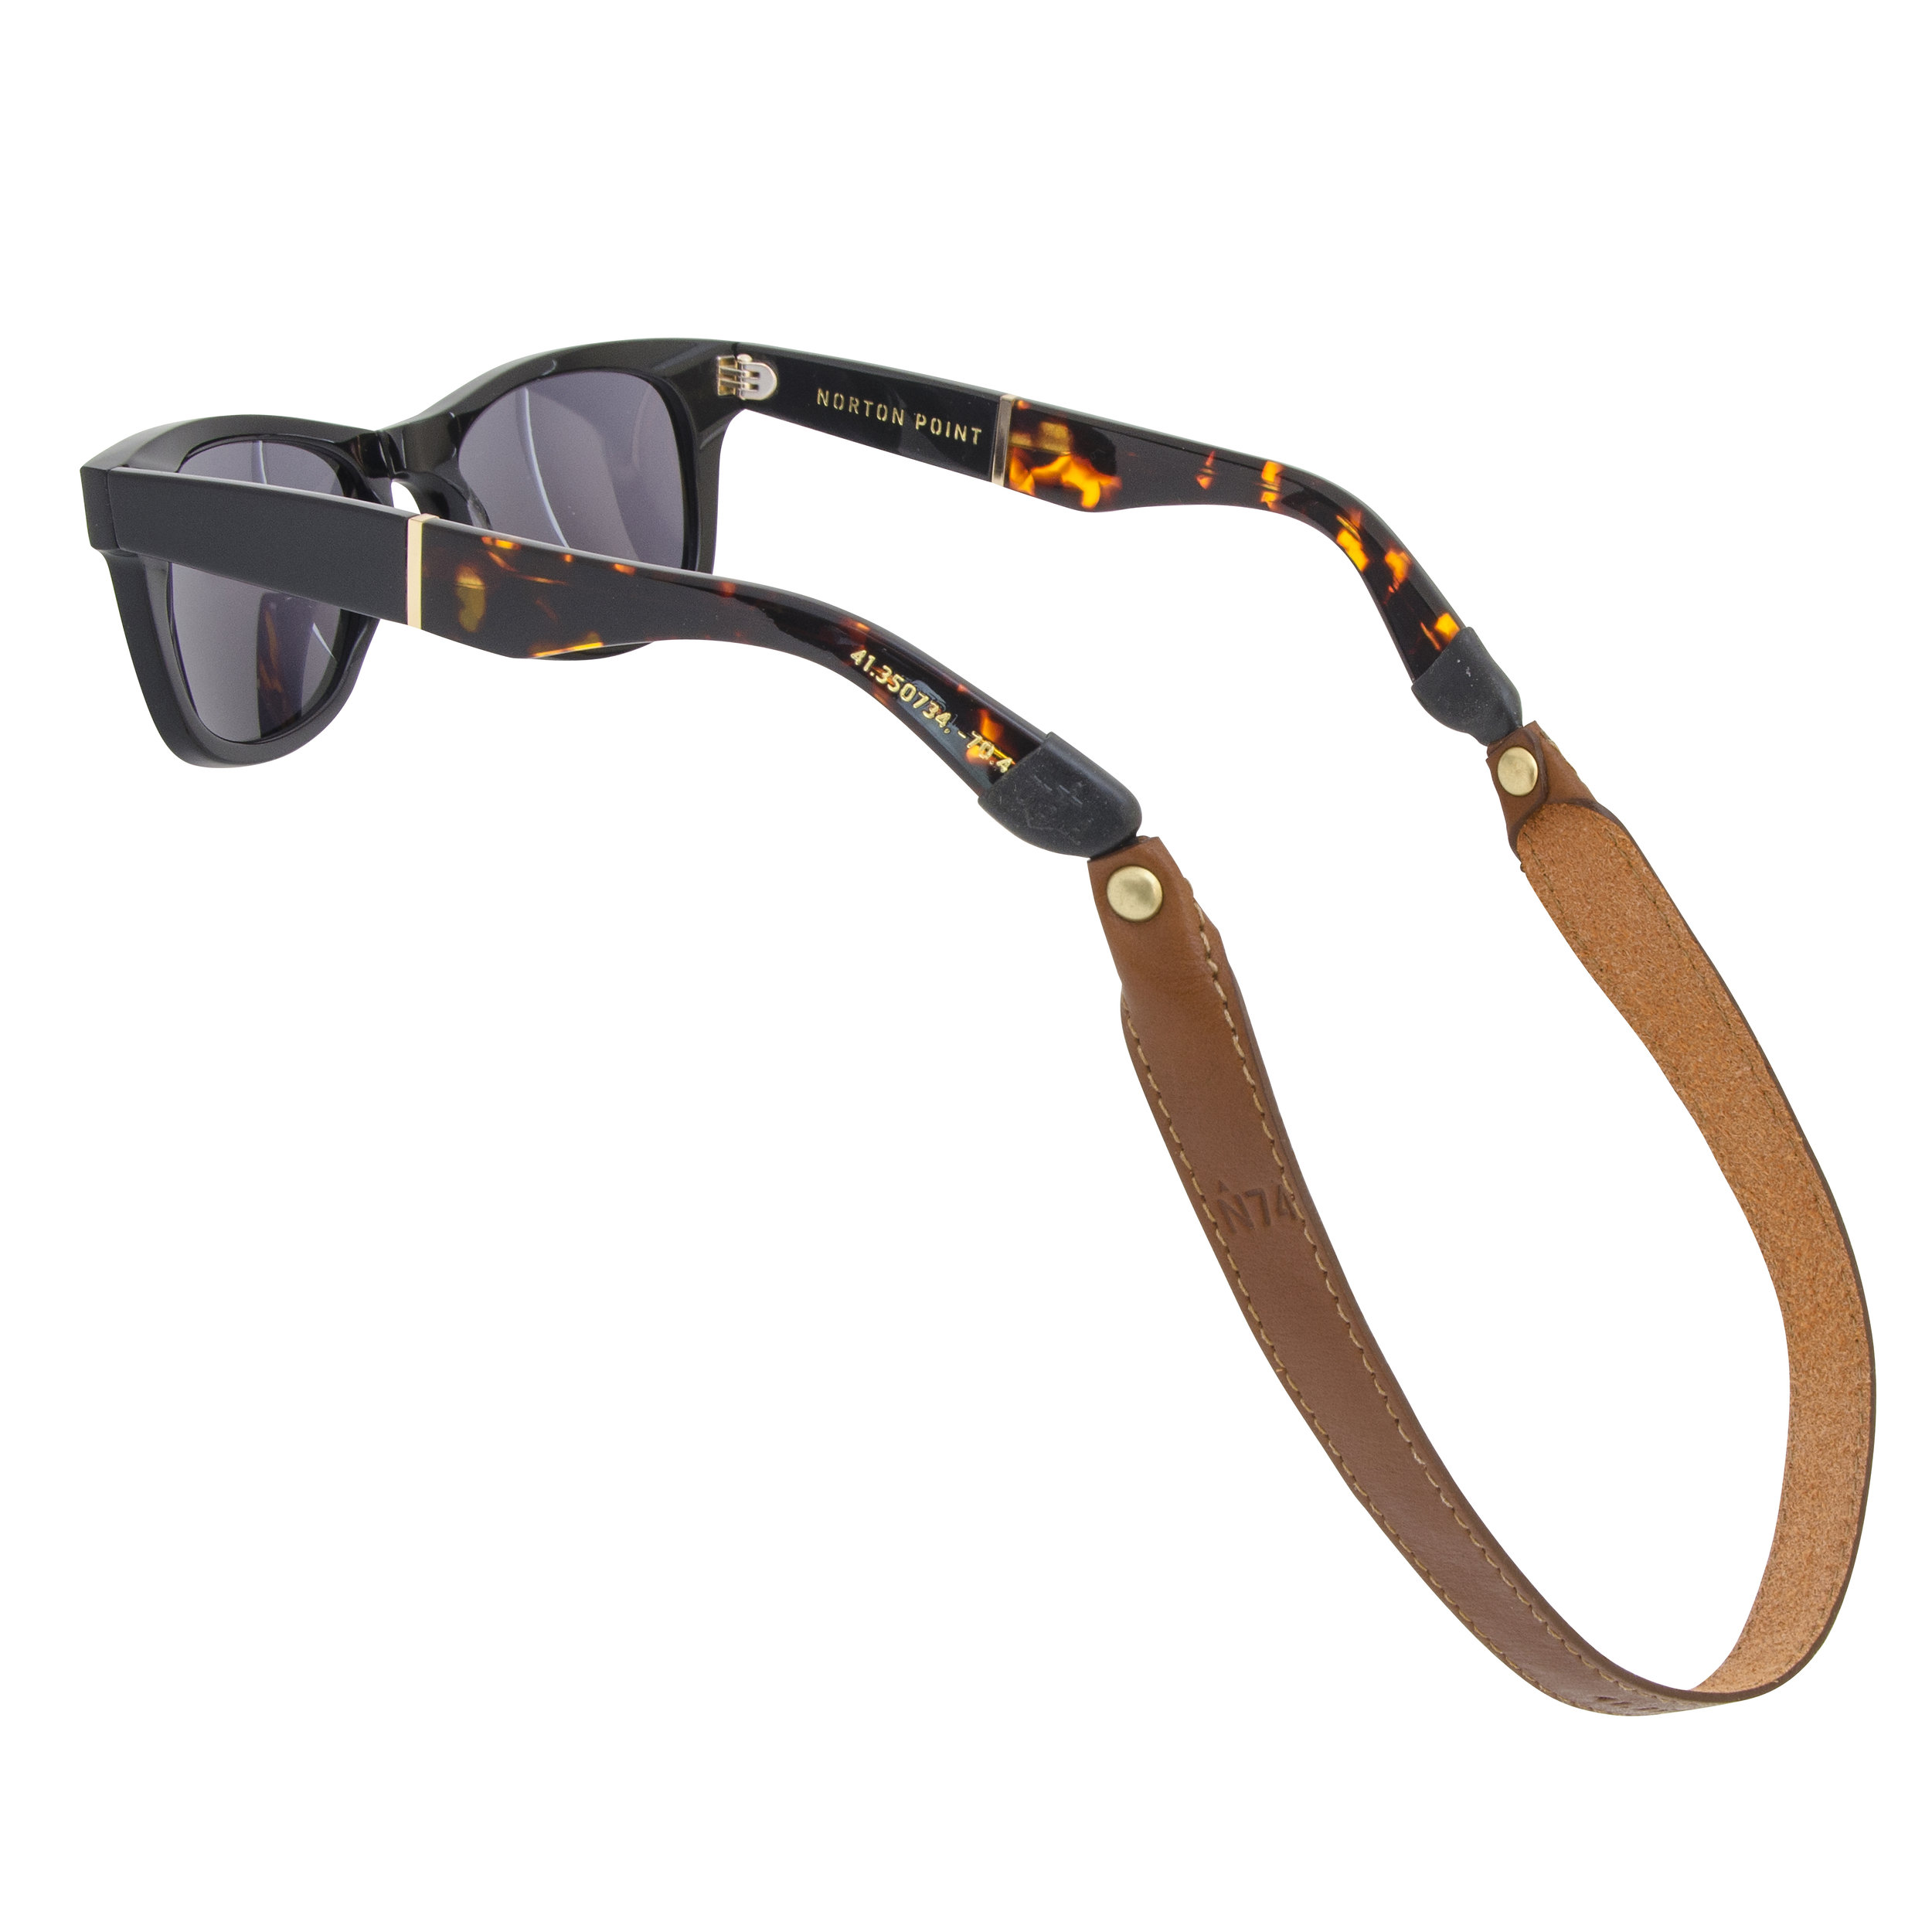 Norton Point Leather Strap on glasses - photo by Andrew Werner.jpg